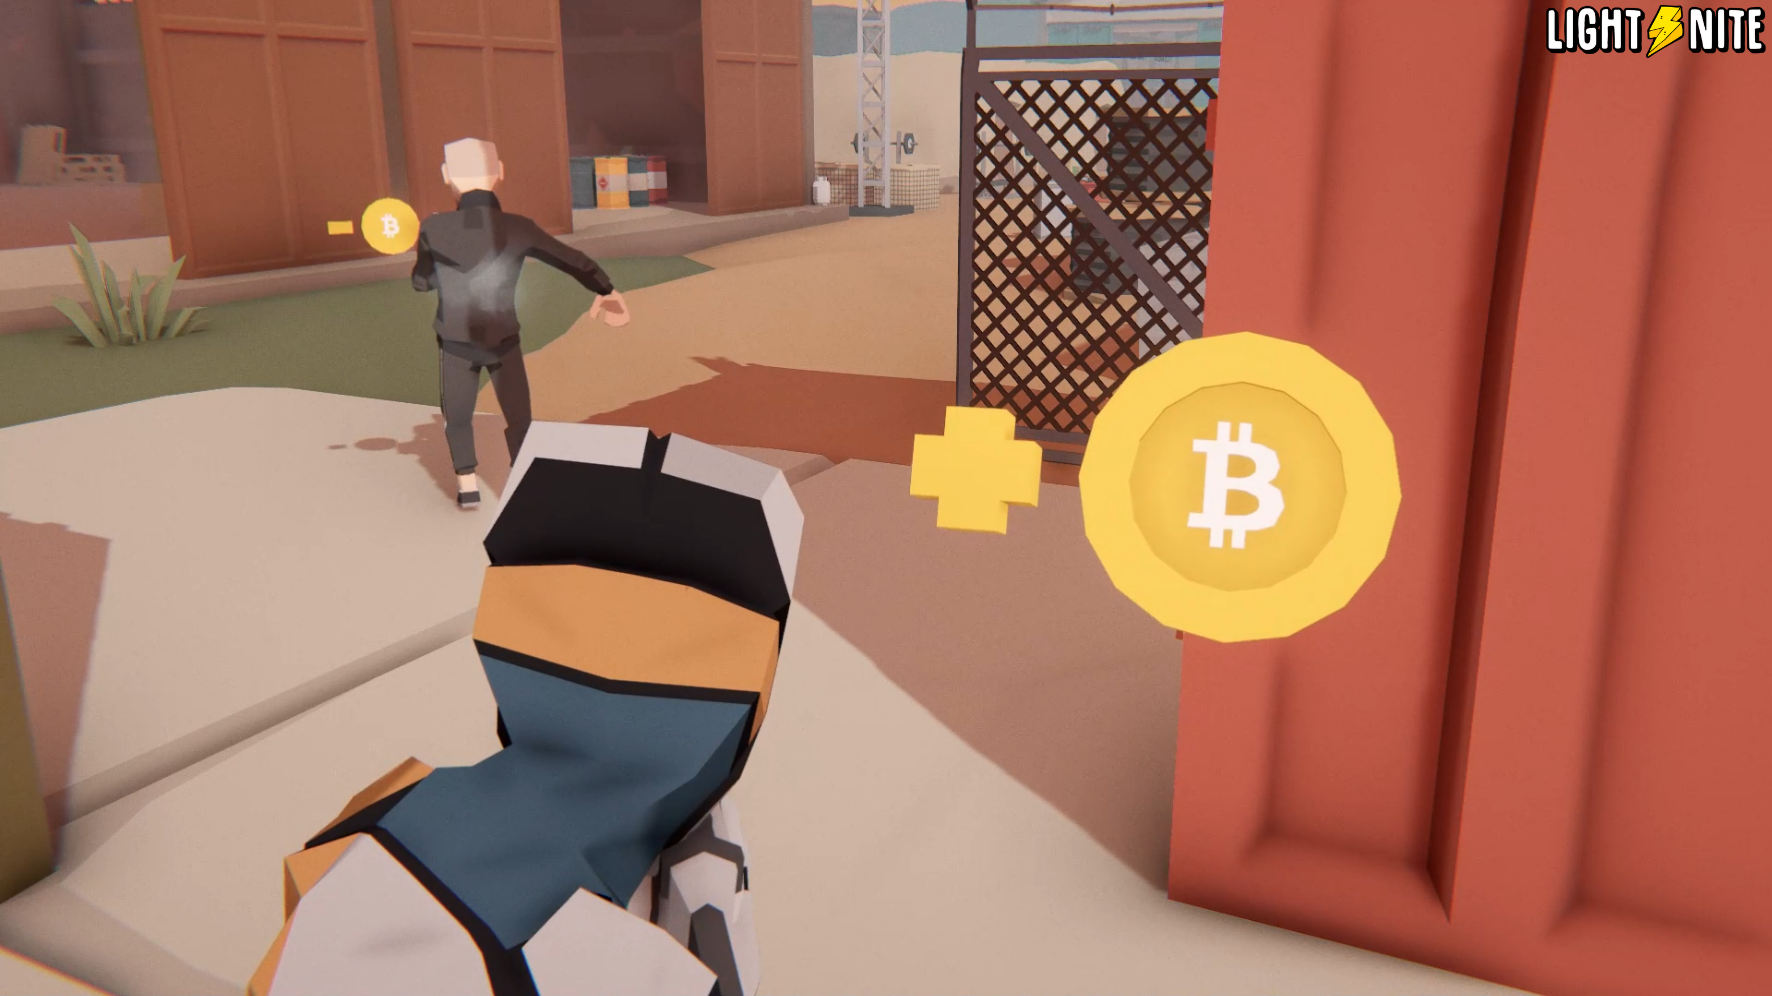 lightnite bitcoin game